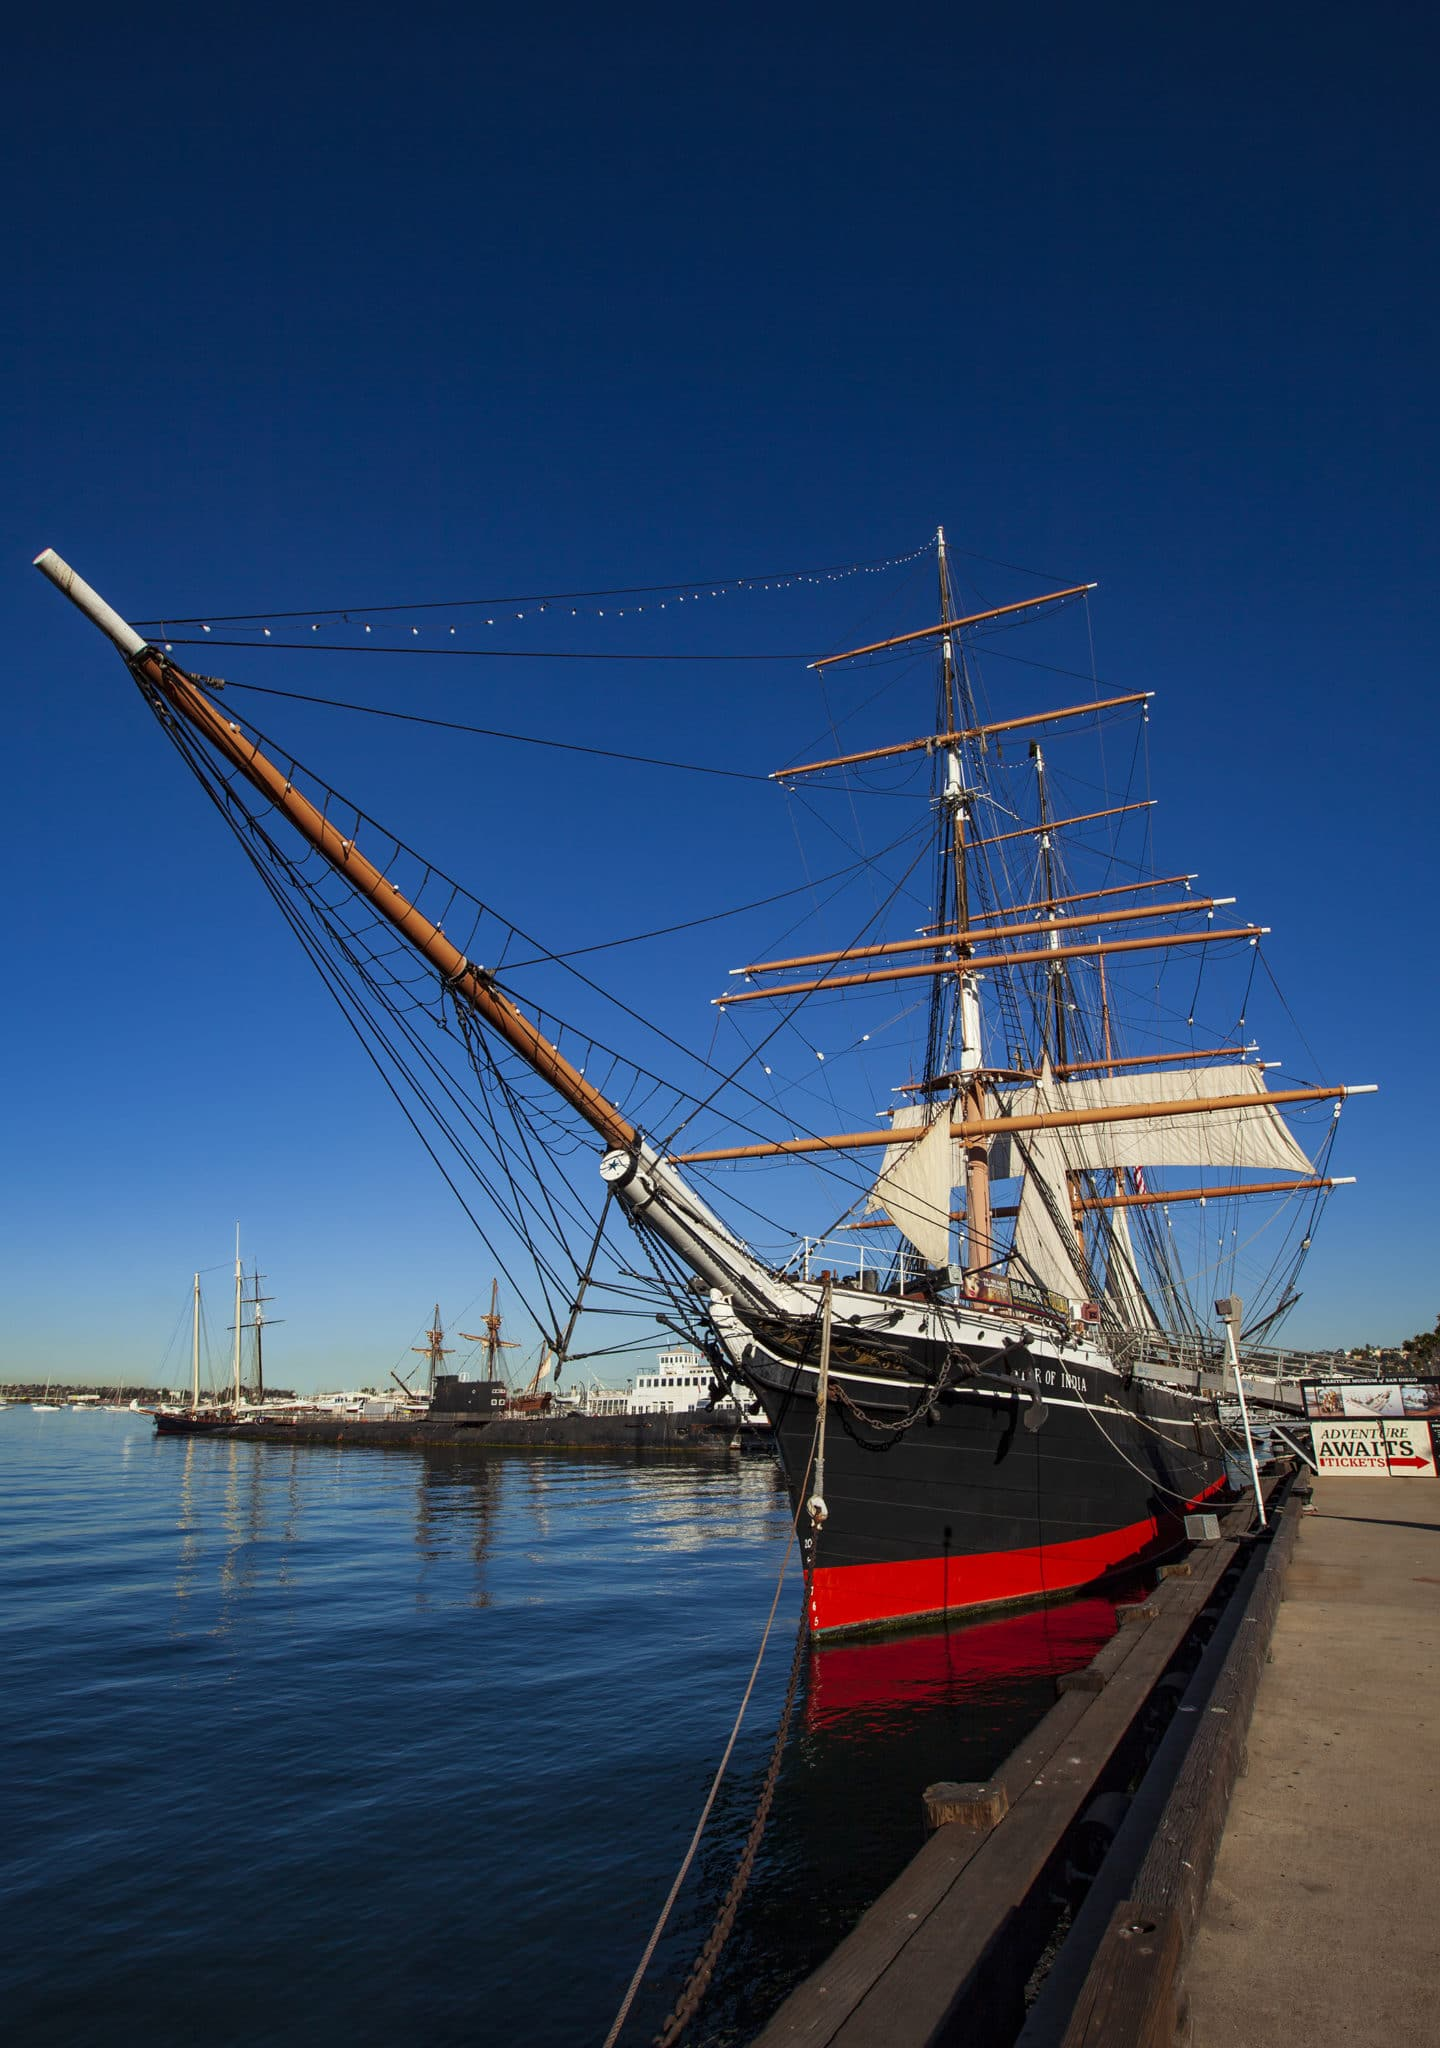 The Star of India Ship in the water at the Maritime Museum of San Diego.